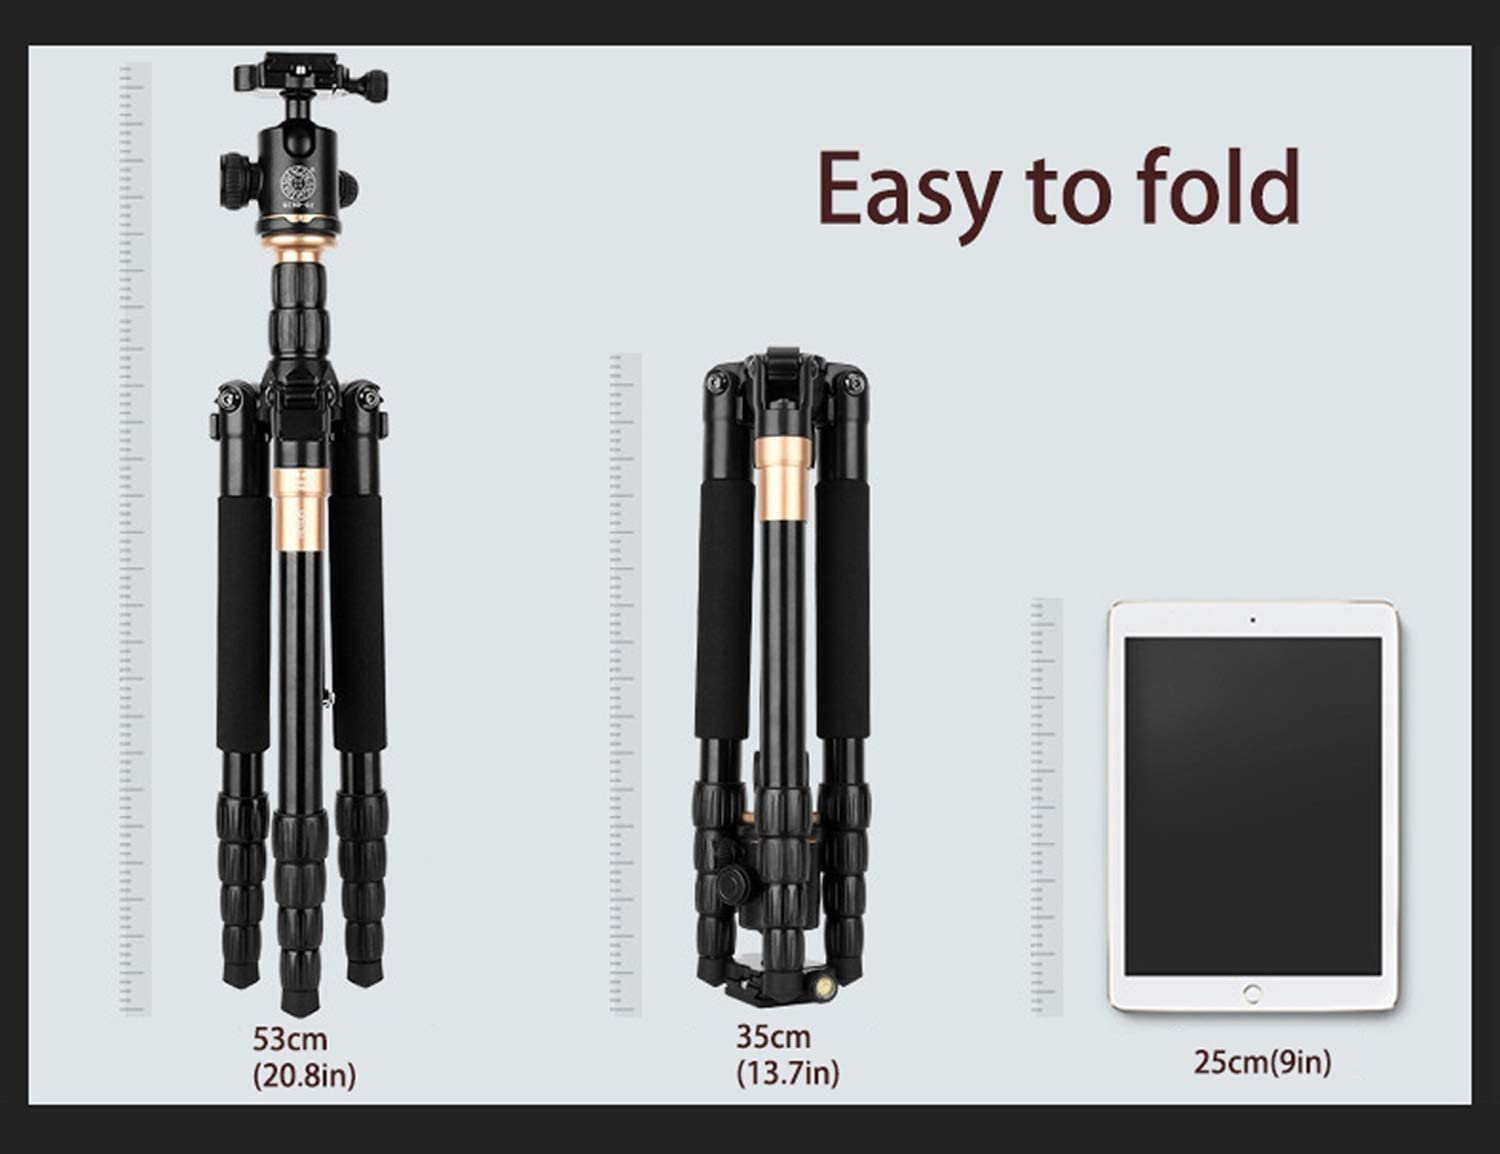 Lightweight and Portable Color : Black Durable Portable Multifunctional Tripod and monopod LLluckyHW Travel Camera Tripod and monopod Compatible with Various Cameras